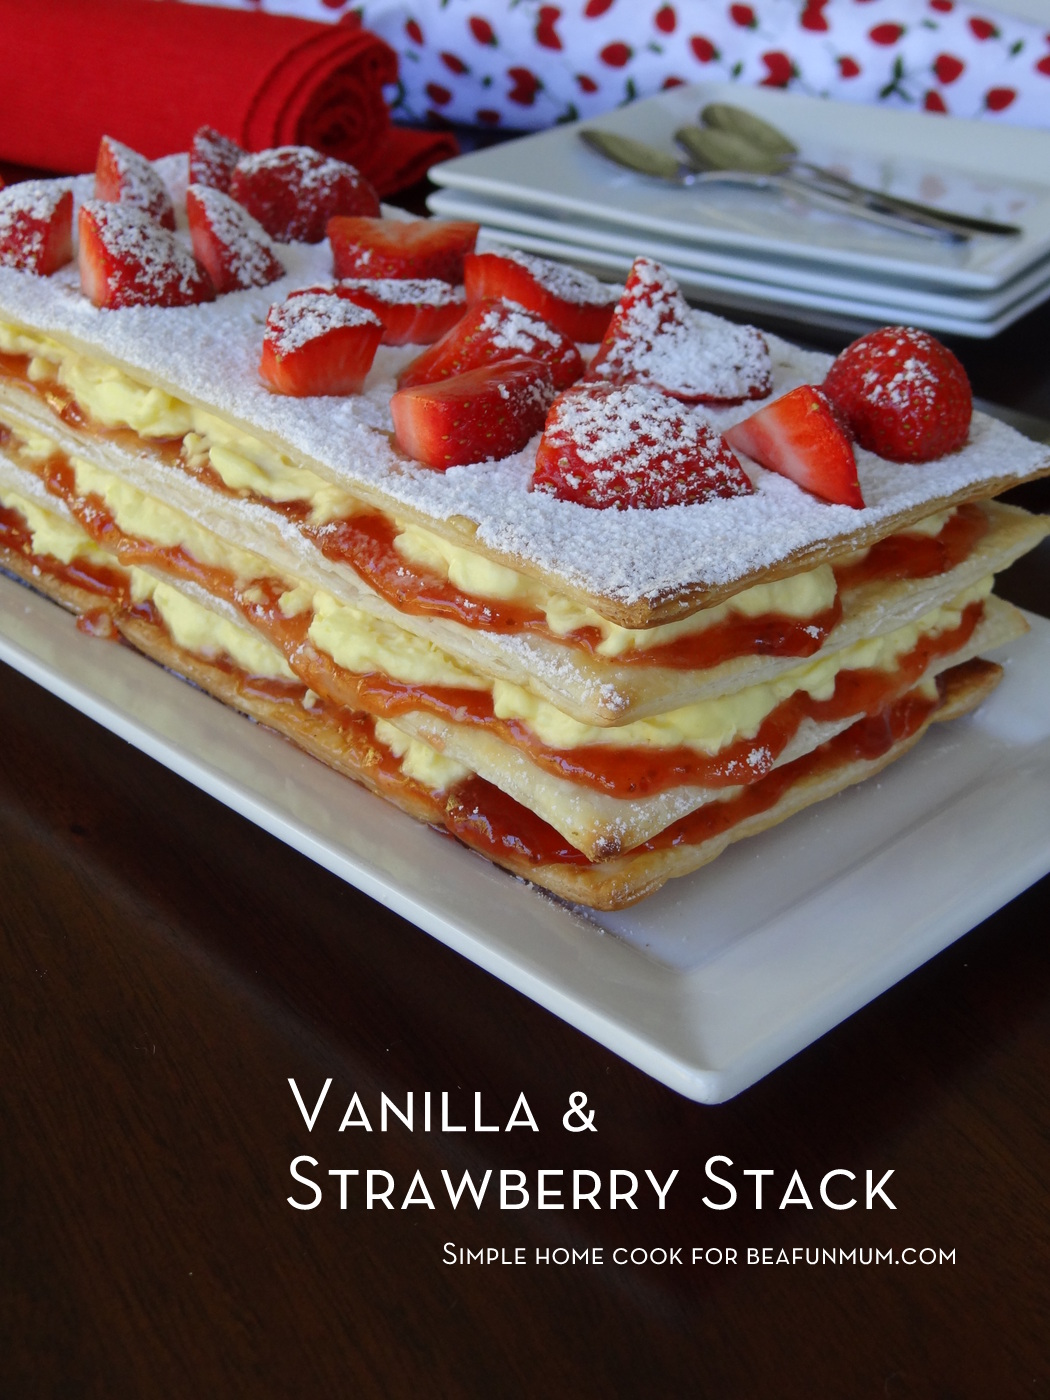 Vanilla & Strawberry Stack